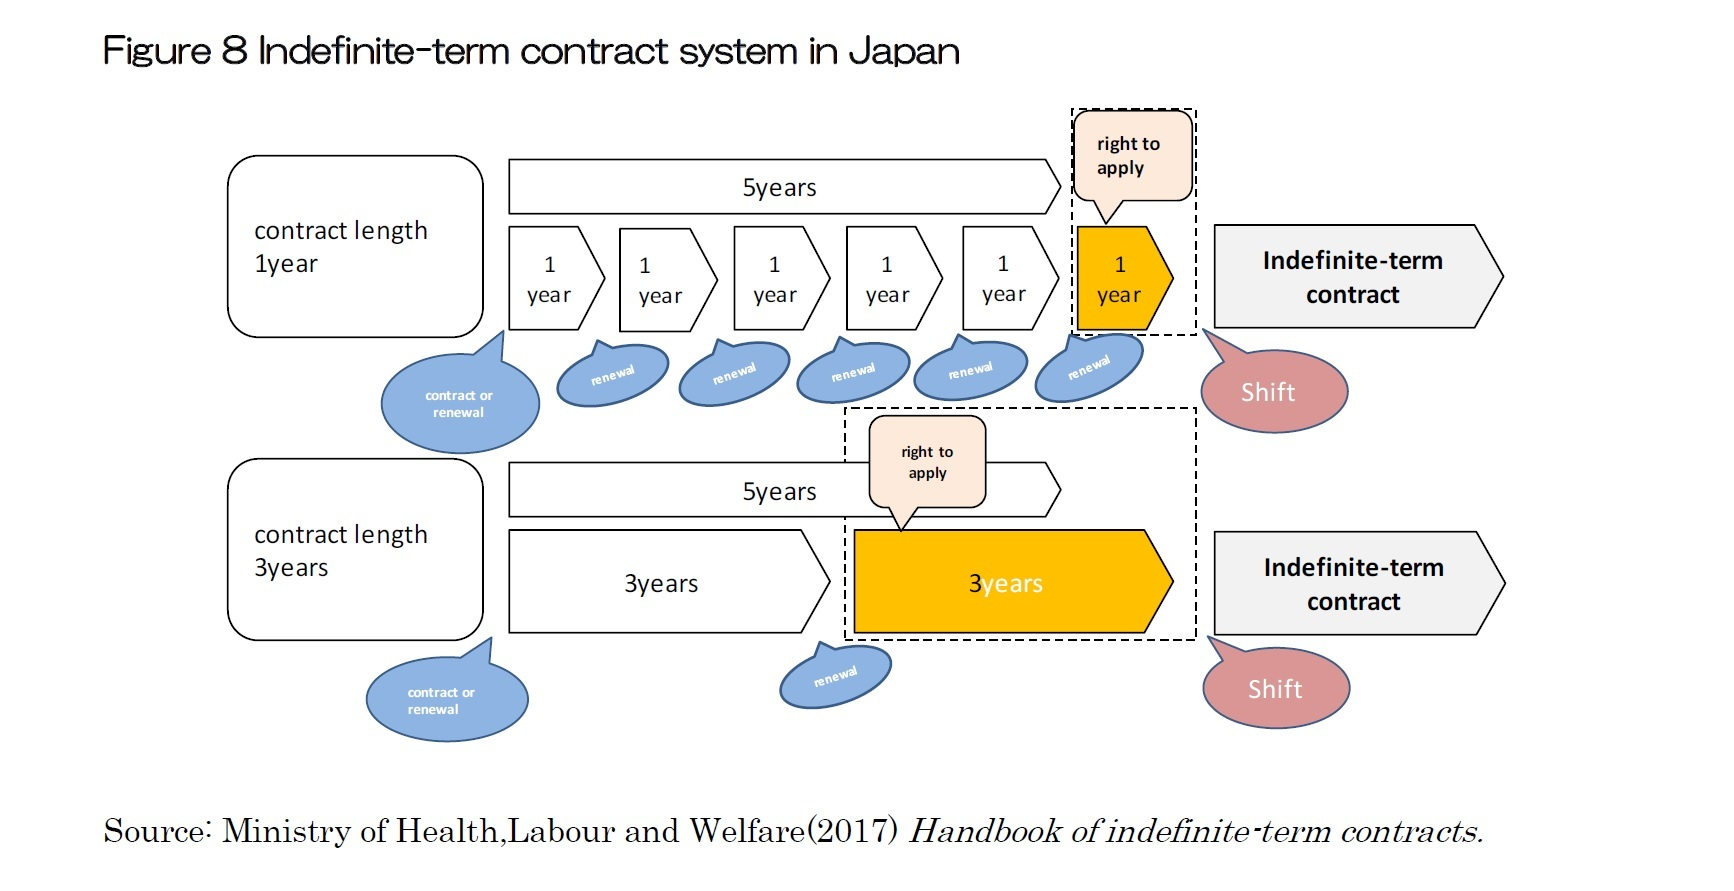 Figure 8 Indefinite-term contract system in Japan